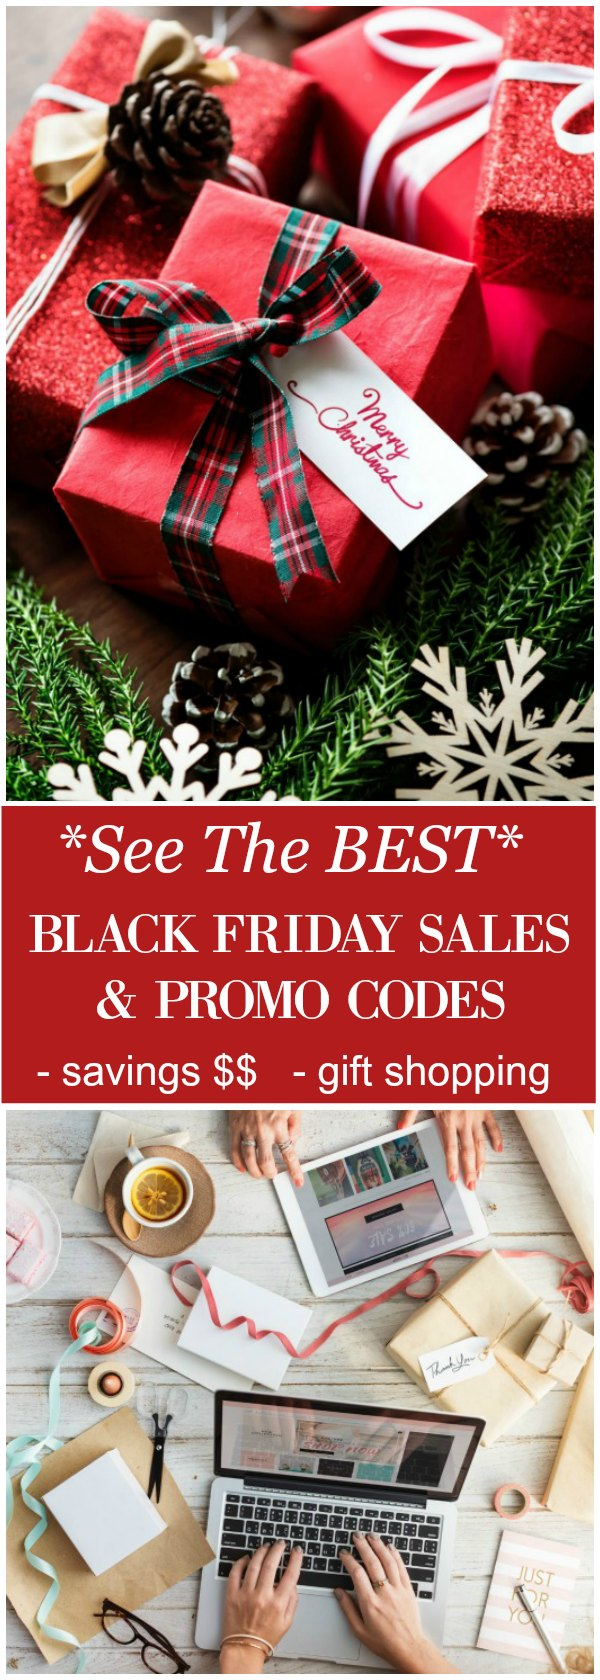 See This List of Best Black Friday Sales & Promo Codes! Shop in your pajamas and avoid the crazy lineups! #blackfriday #shopping #sale #promocodes #savemoney #online #christmasgifts #christmas